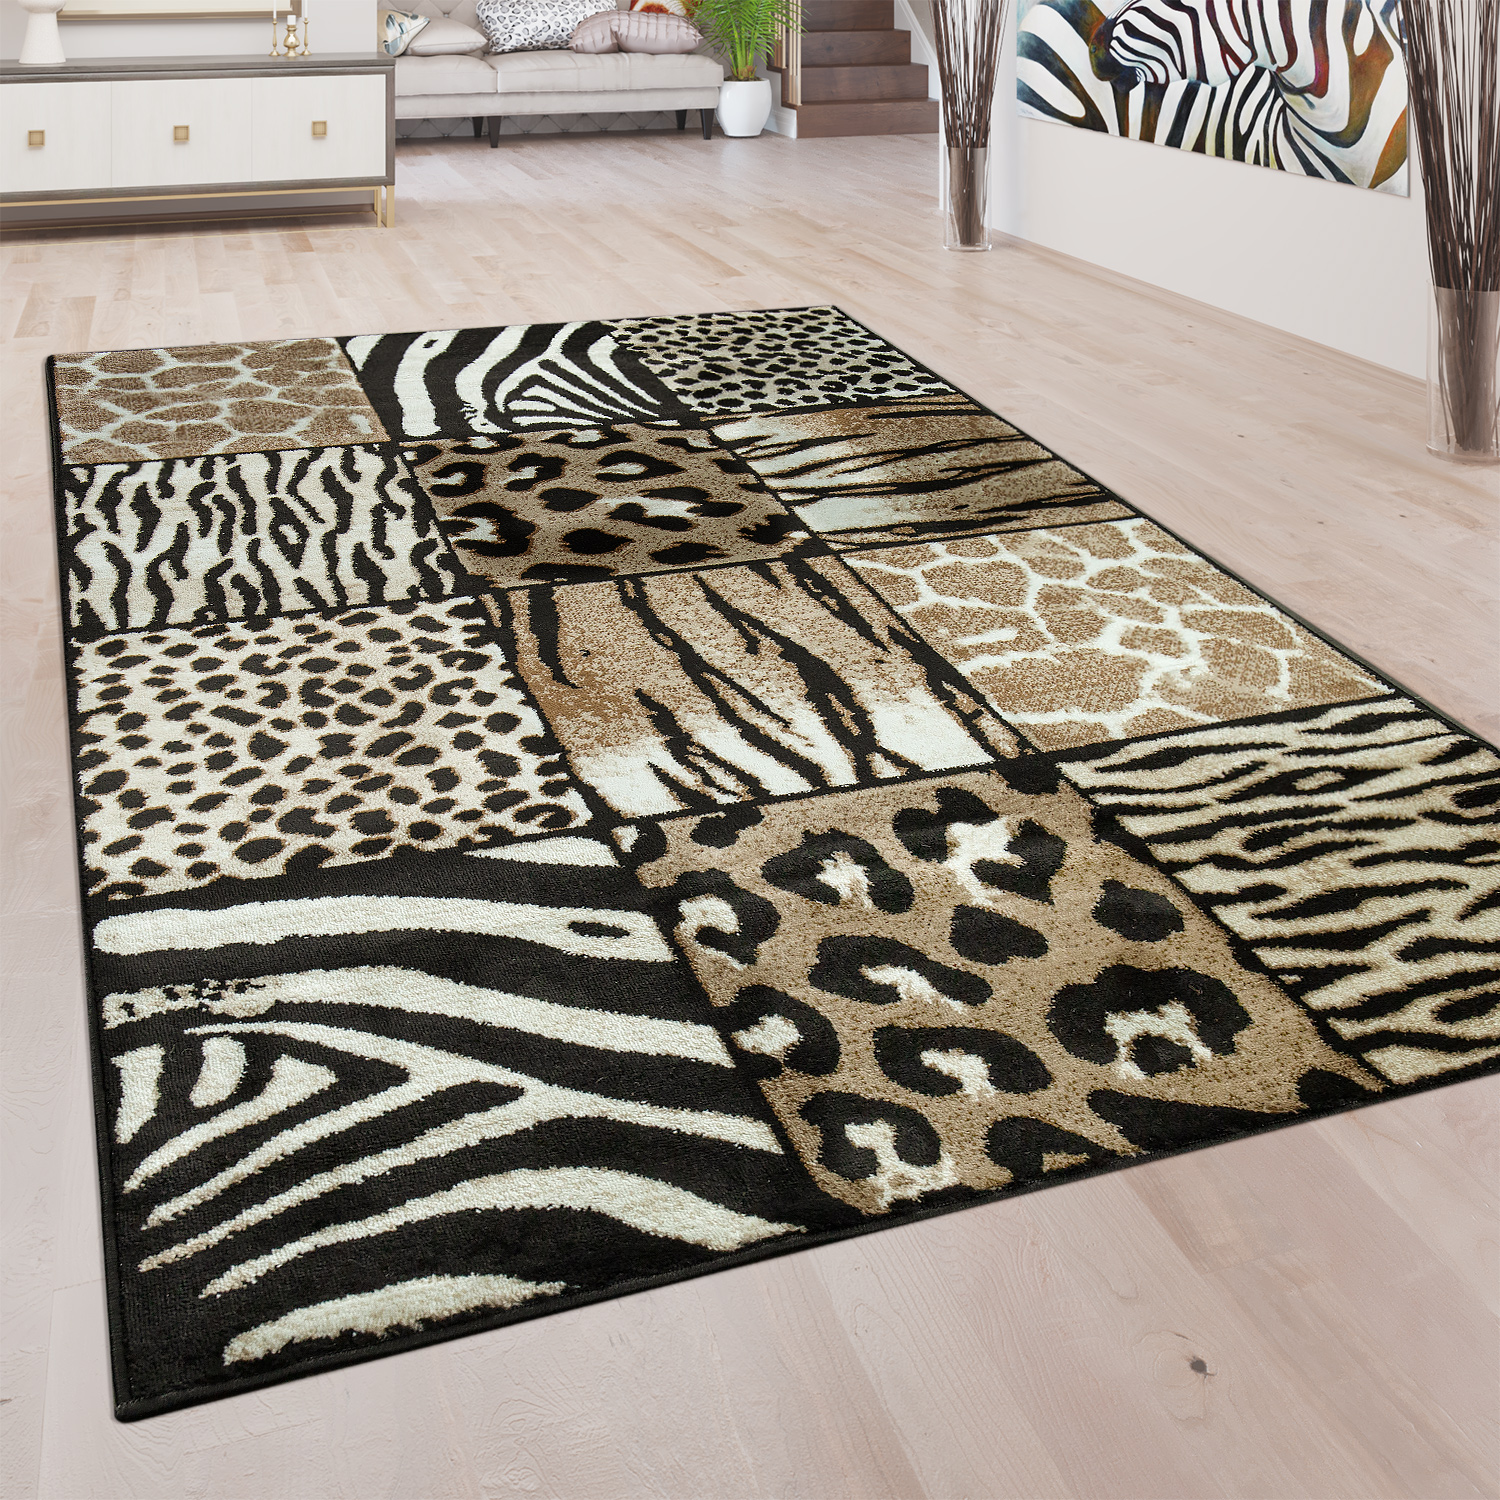 Wunderbar Designer Rug Animal Fur Motif Brown 001